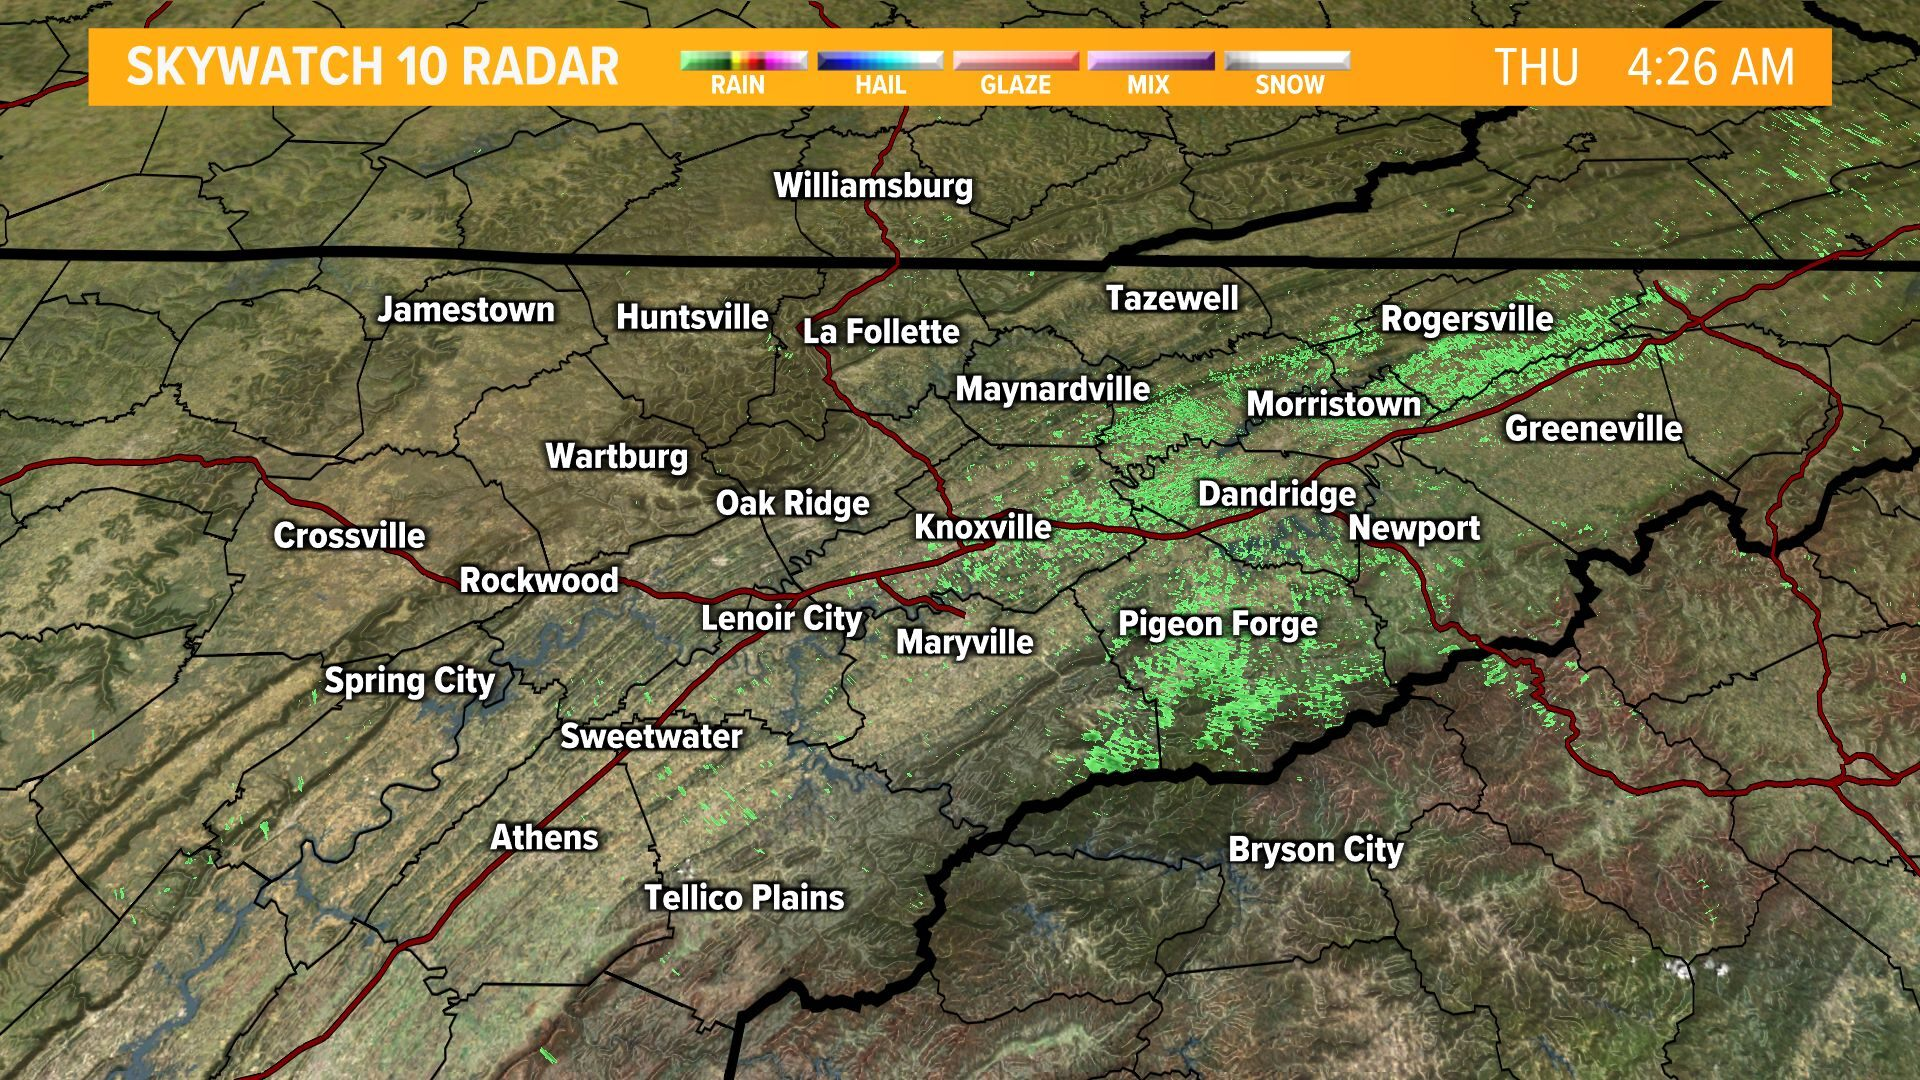 East Tennessee Interactive Radar on WBIR in Knoxville